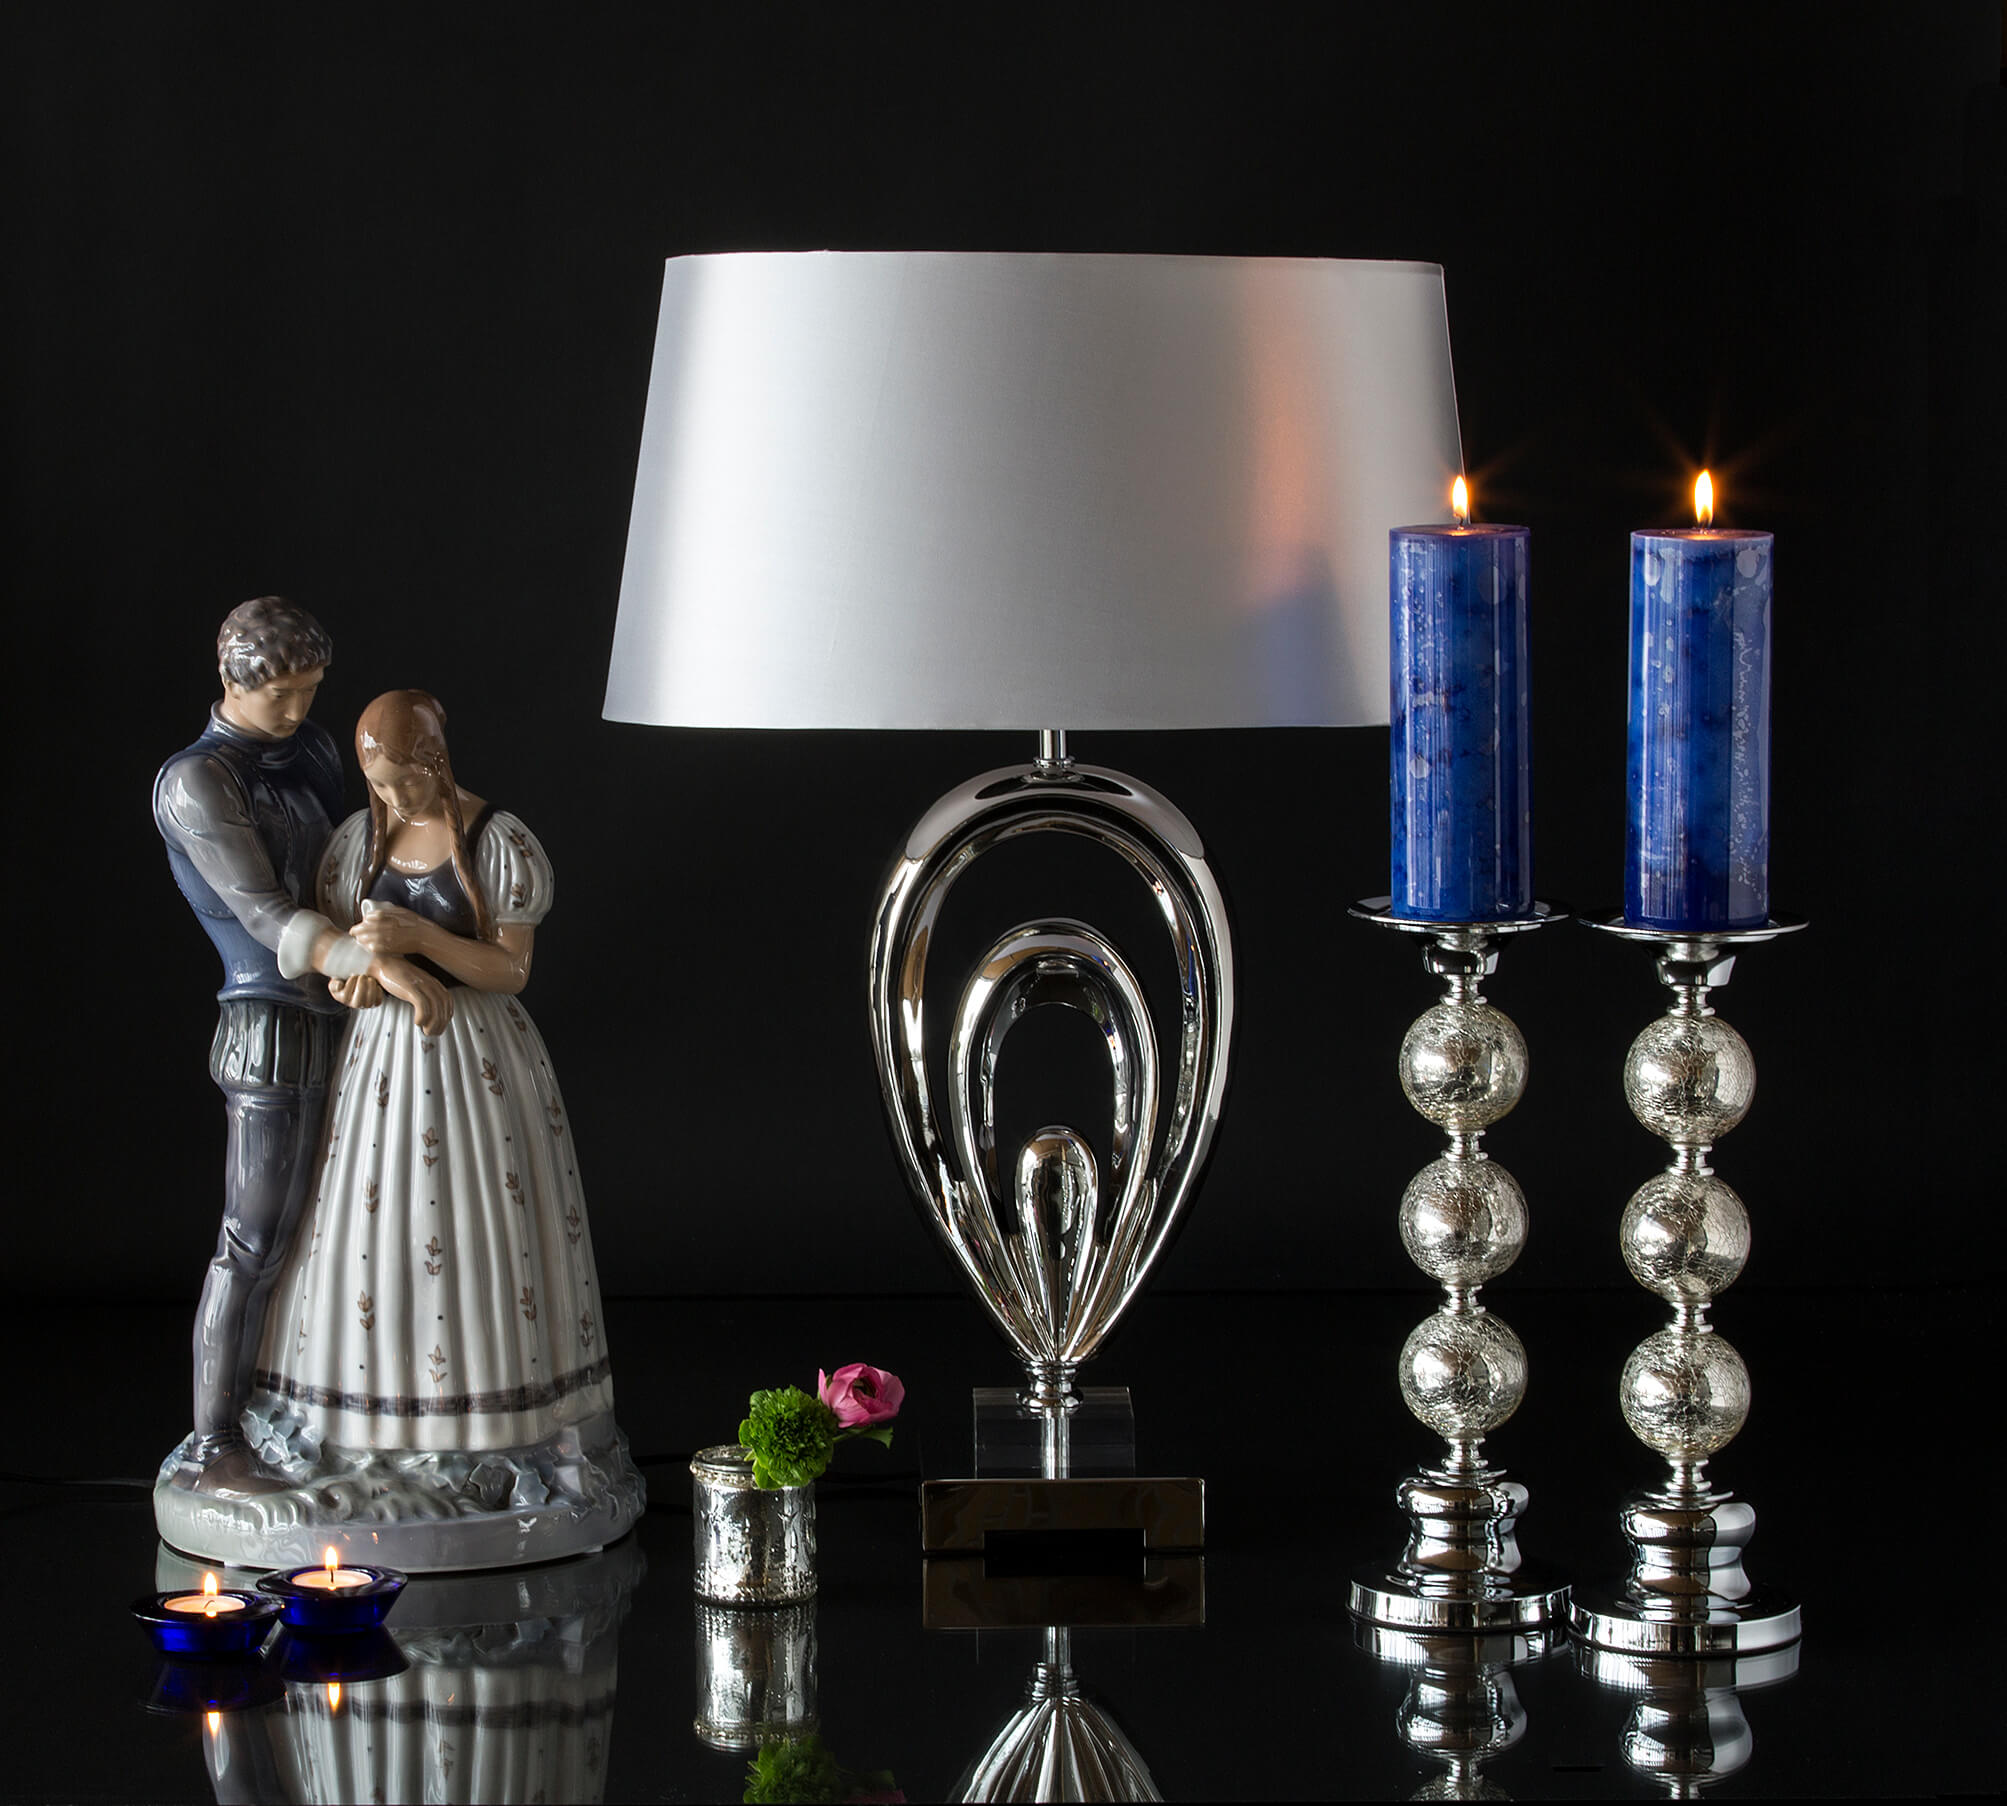 Large Knight and Maiden figurine next to a glass lamp and candlesticks